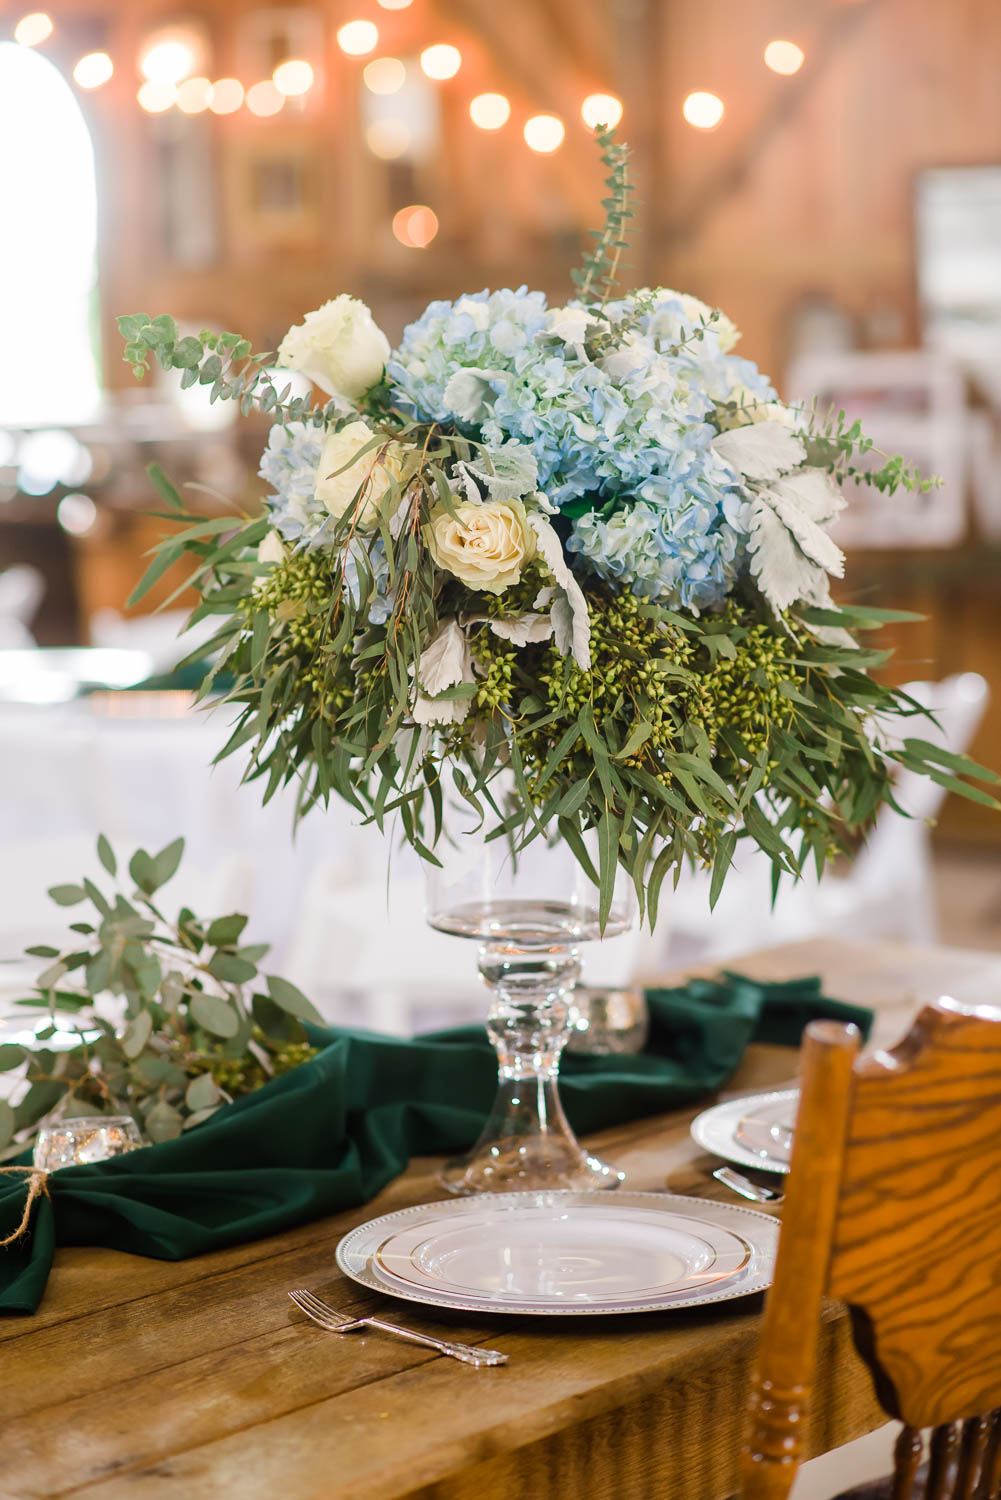 tall floral center piece with blue flowers and greenery